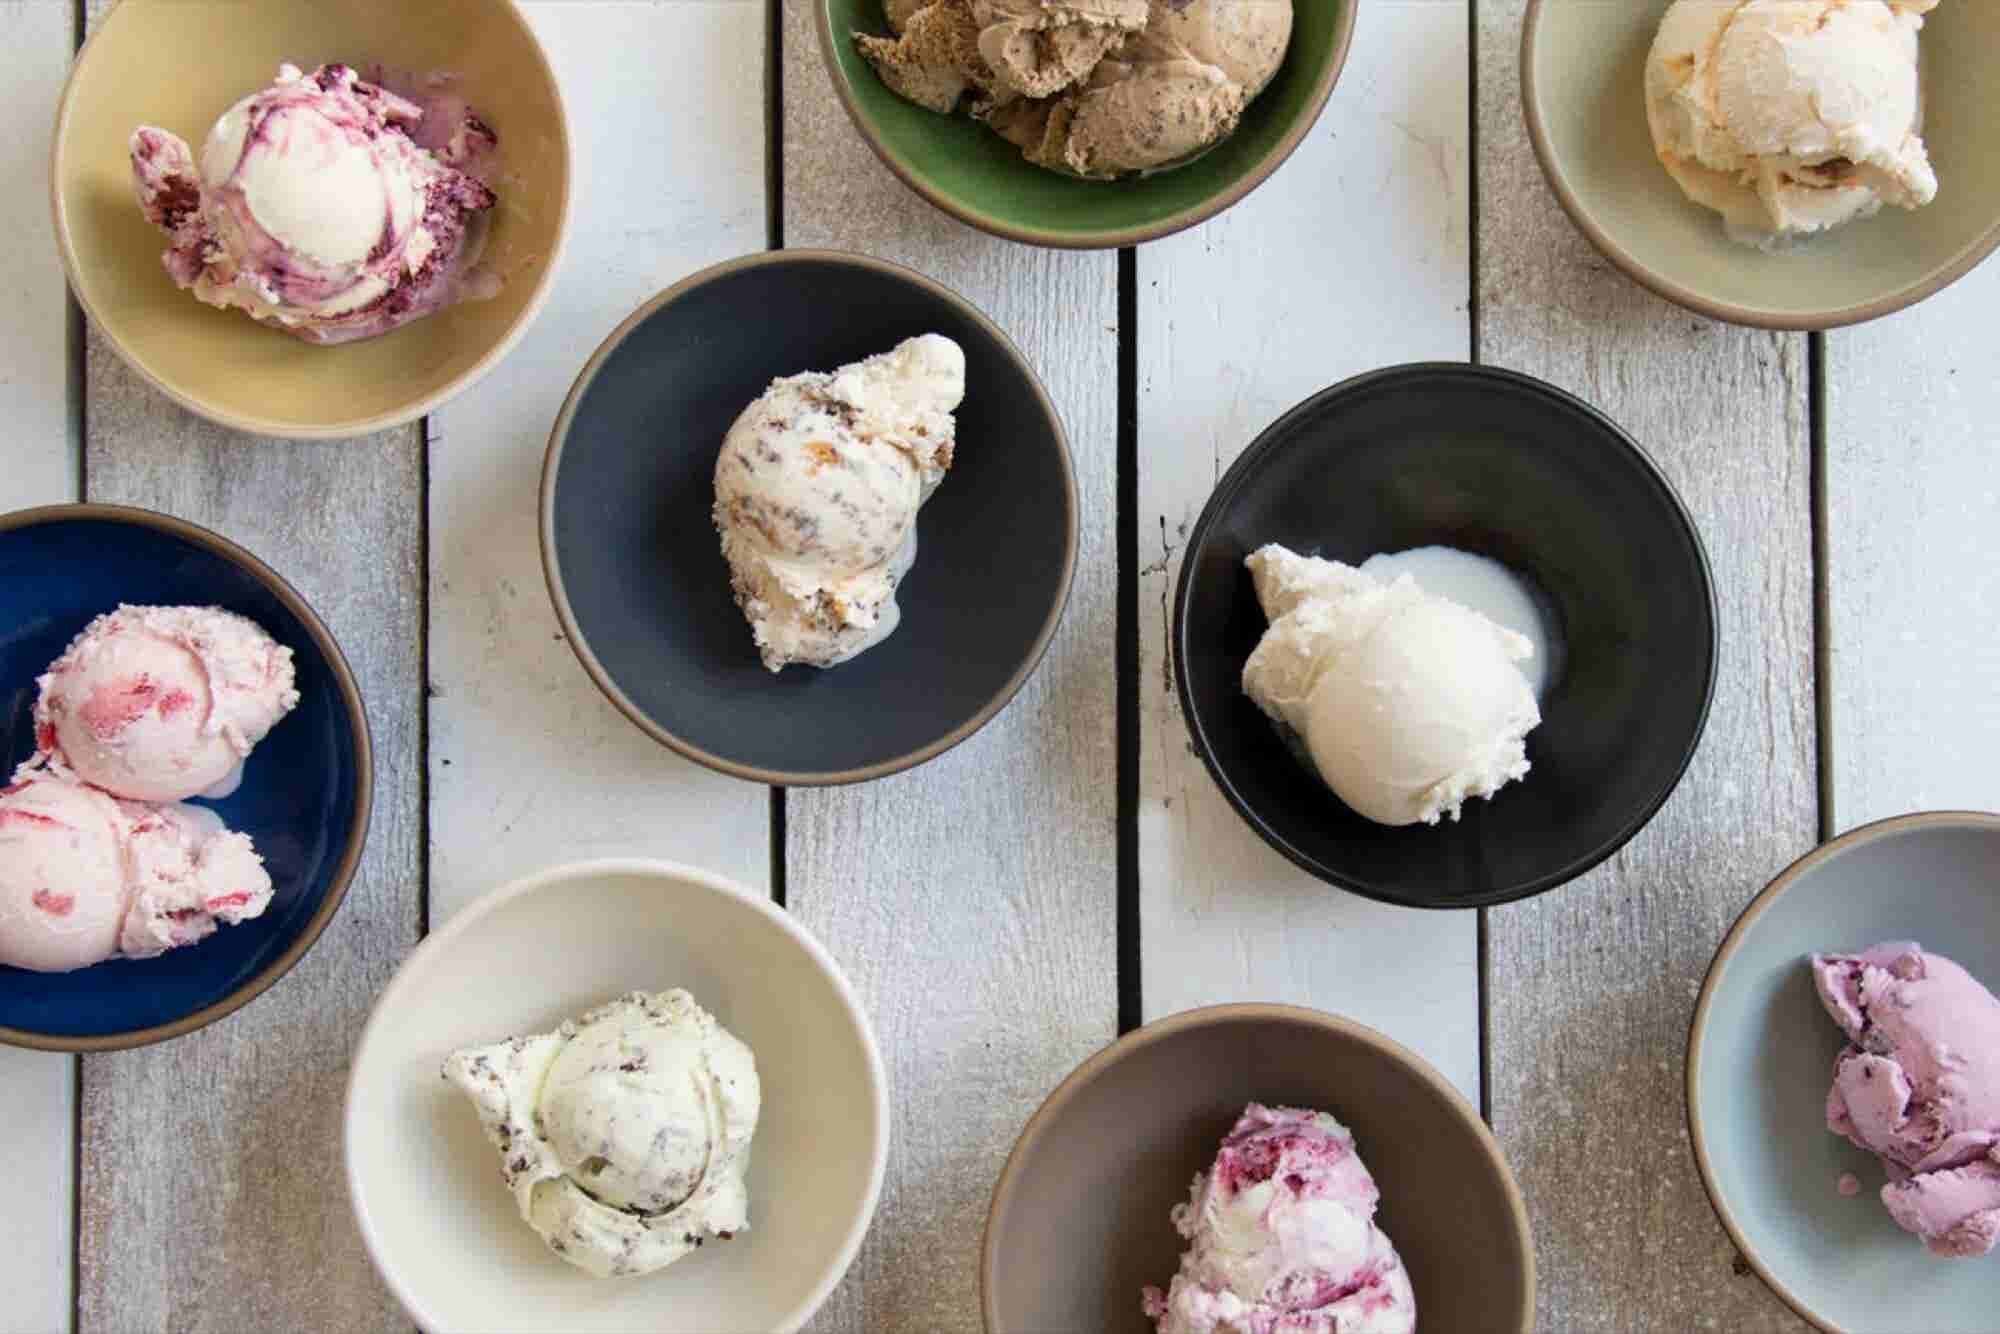 Why This Entrepreneur Who Took Over a 70-Year-Old Ice Cream Brand Advocates for Slow Growth